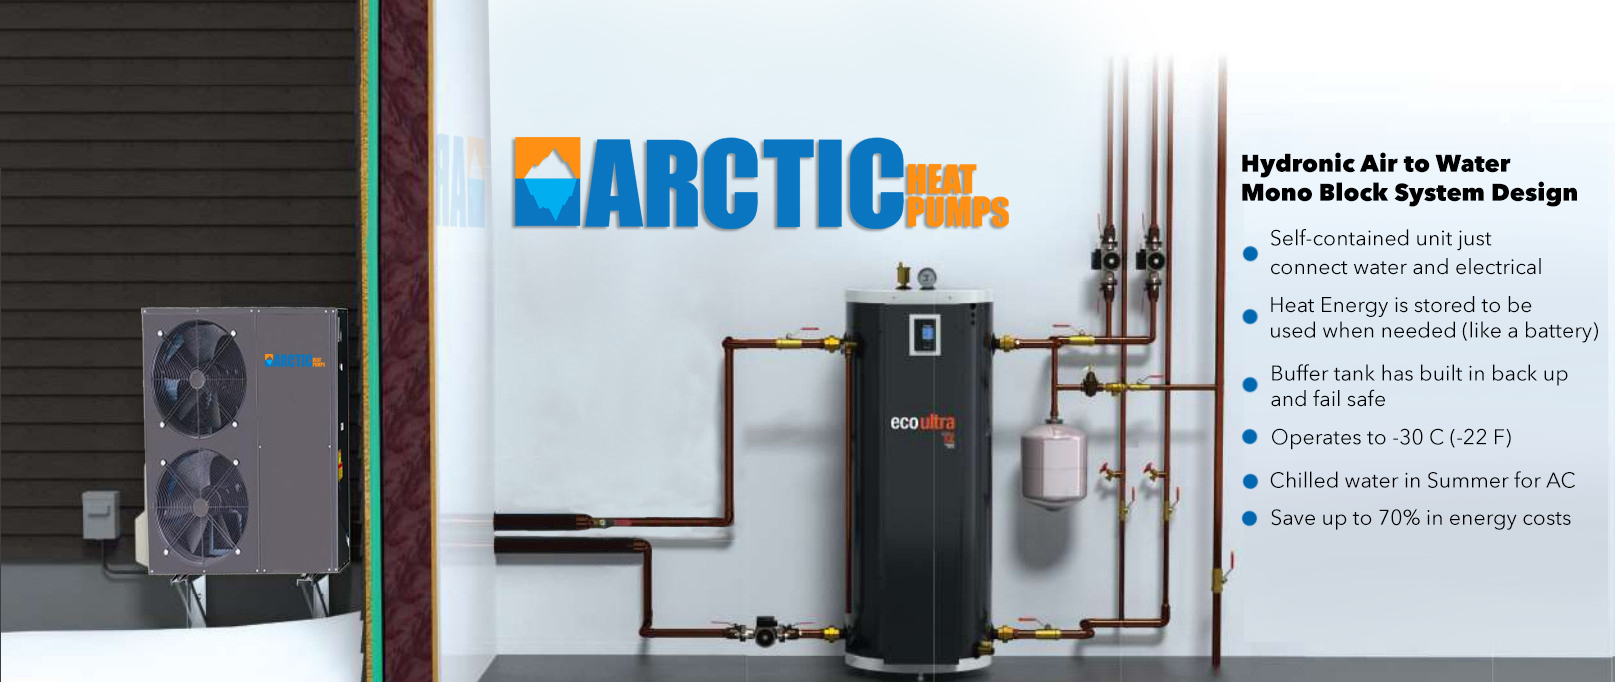 Hydronic Air to Water